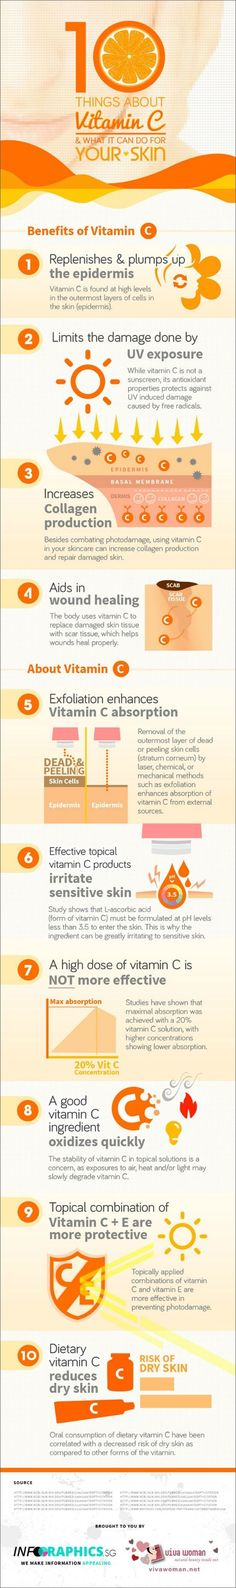 What Vitamin C can do for your skin #infographic #healthyskin #skincare